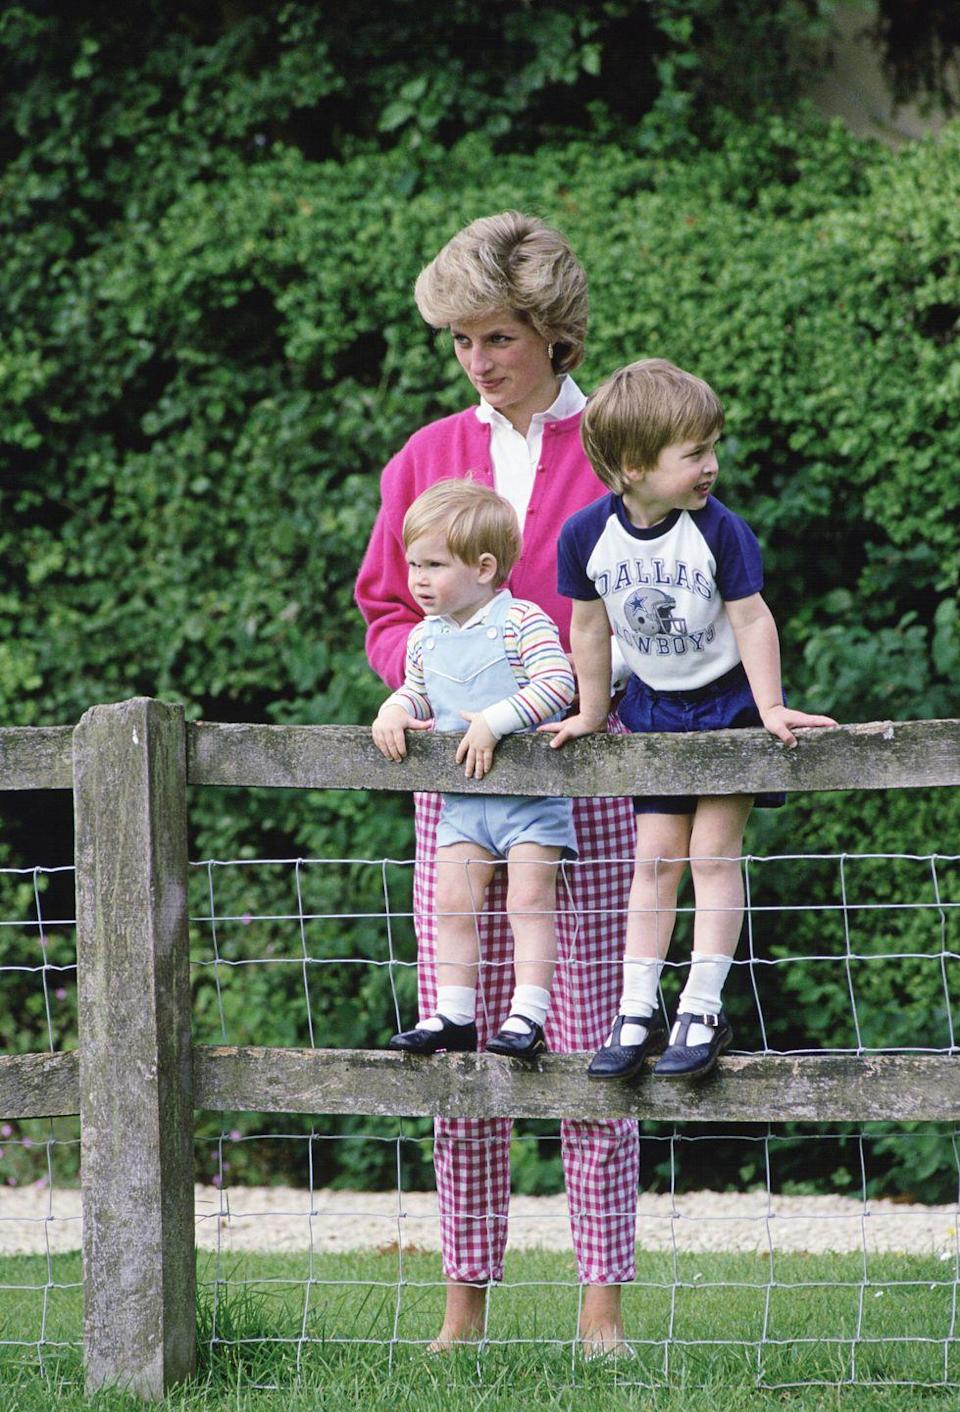 "<p>When she married Prince Charles, Diana gave up working as a nursery school teacher in favor of her royal obligations. But while she maintained her official duties, Diana put parenting before her other commitments. </p><p>""Inevitably, she left her children with nannies — just as she herself and so many other well-to-do British children have been left — but she tried to arrange her schedule to match the boys',"" Katrine Ames <a href=""http://www.newsweek.com/princess-diana-diana-william-harry-prince-william-prince-harry-royal-family-383384"" rel=""nofollow noopener"" target=""_blank"" data-ylk=""slk:wrote"" class=""link rapid-noclick-resp"">wrote</a> in <em>Newsweek</em> in 1997. ""In her official calendar, the princess had all the everyday details of her son's utterly uneveryday lives marked in green ink.""</p>"